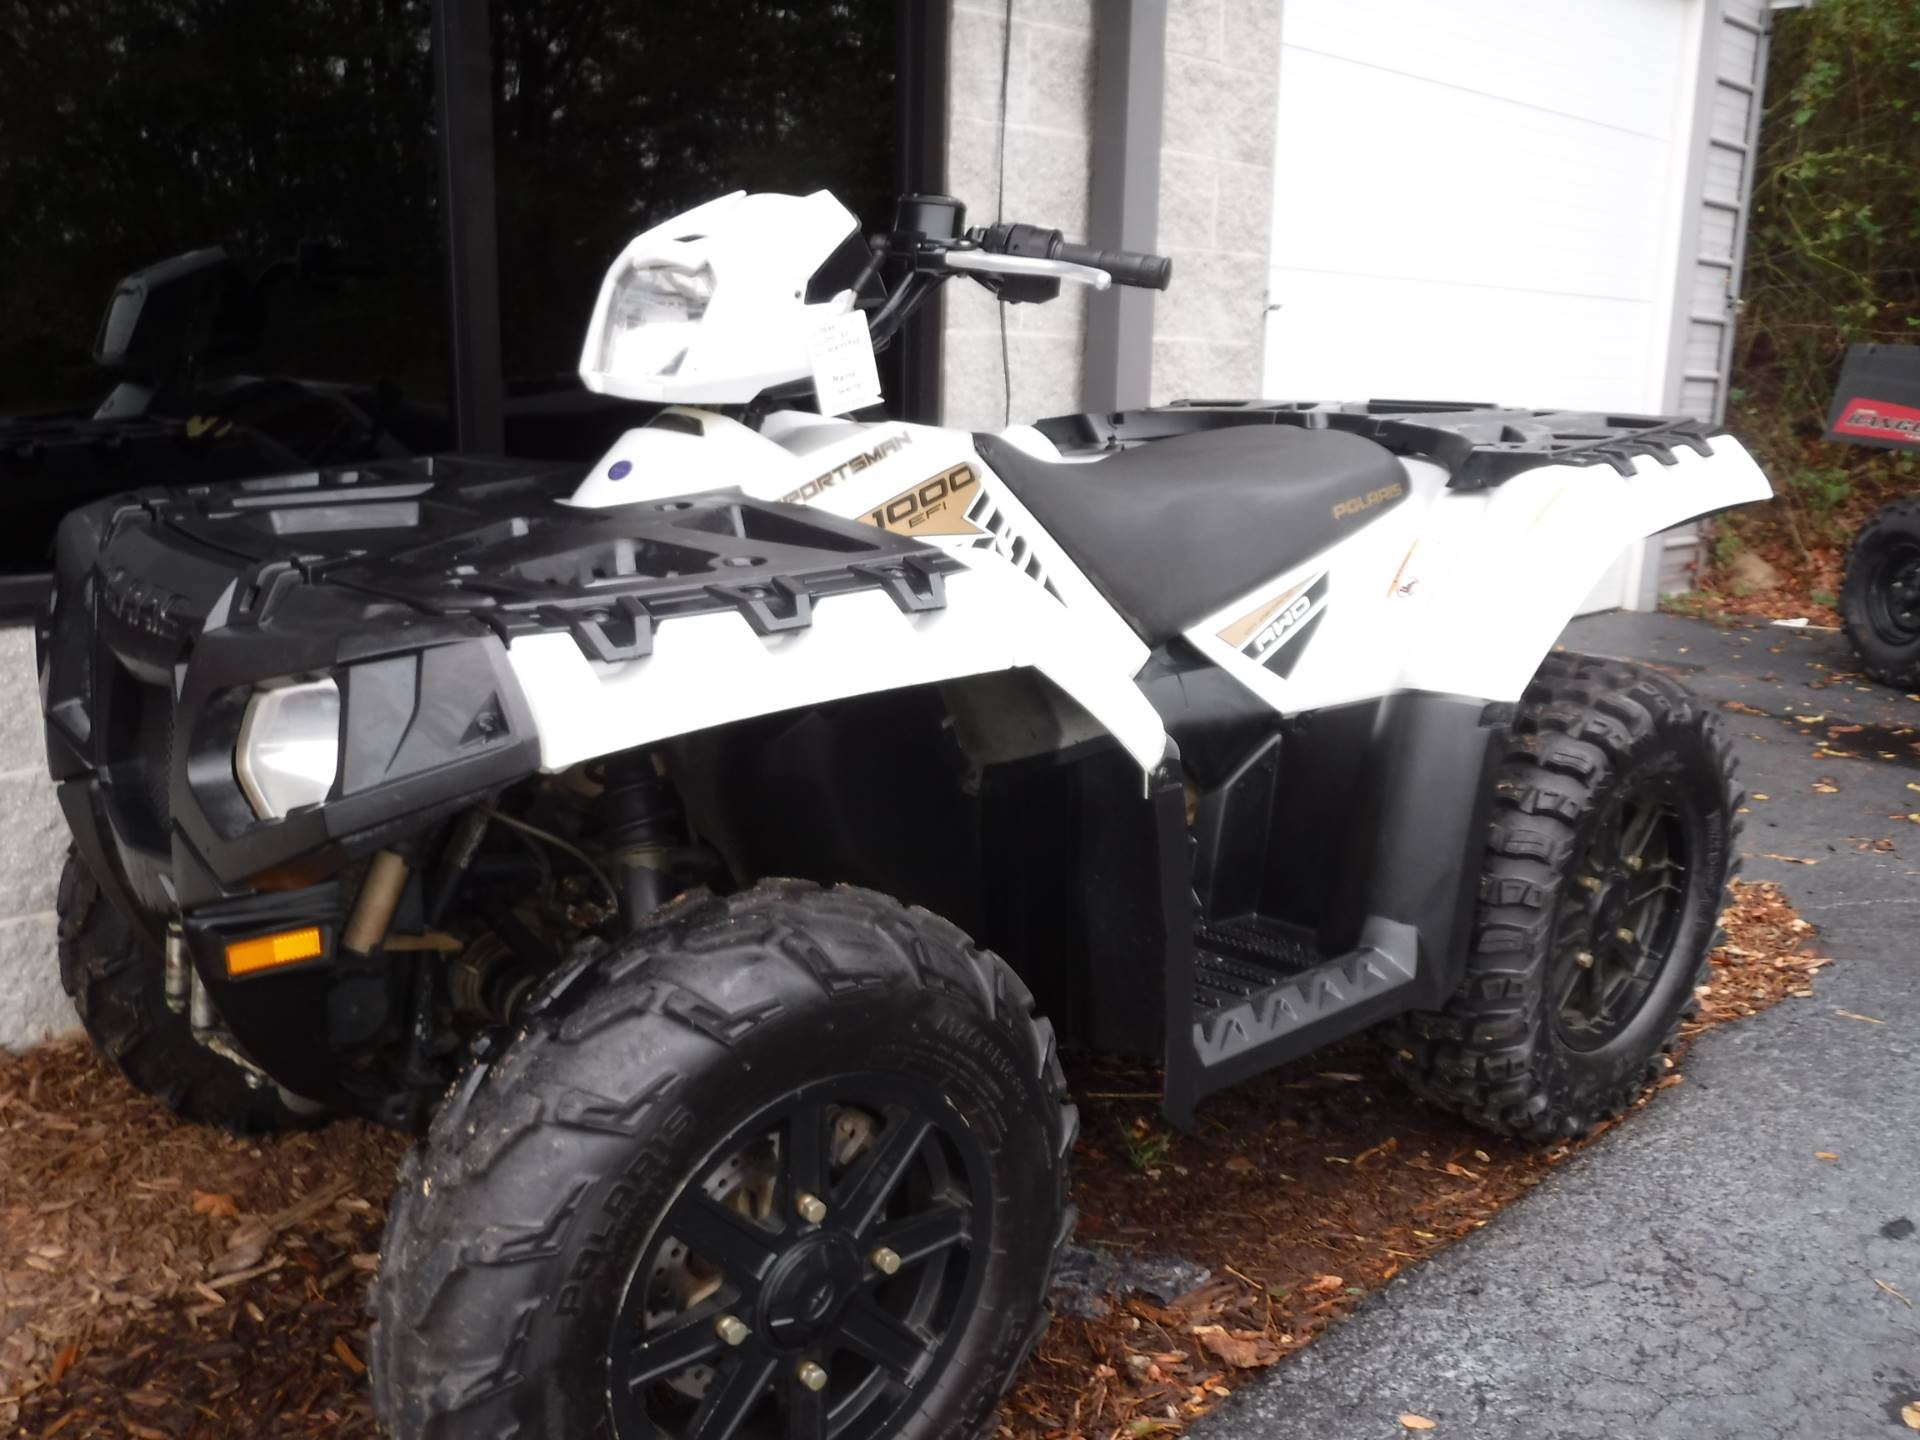 2015 Polaris Sportsman XP® 1000 in Hermitage, Pennsylvania - Photo 1